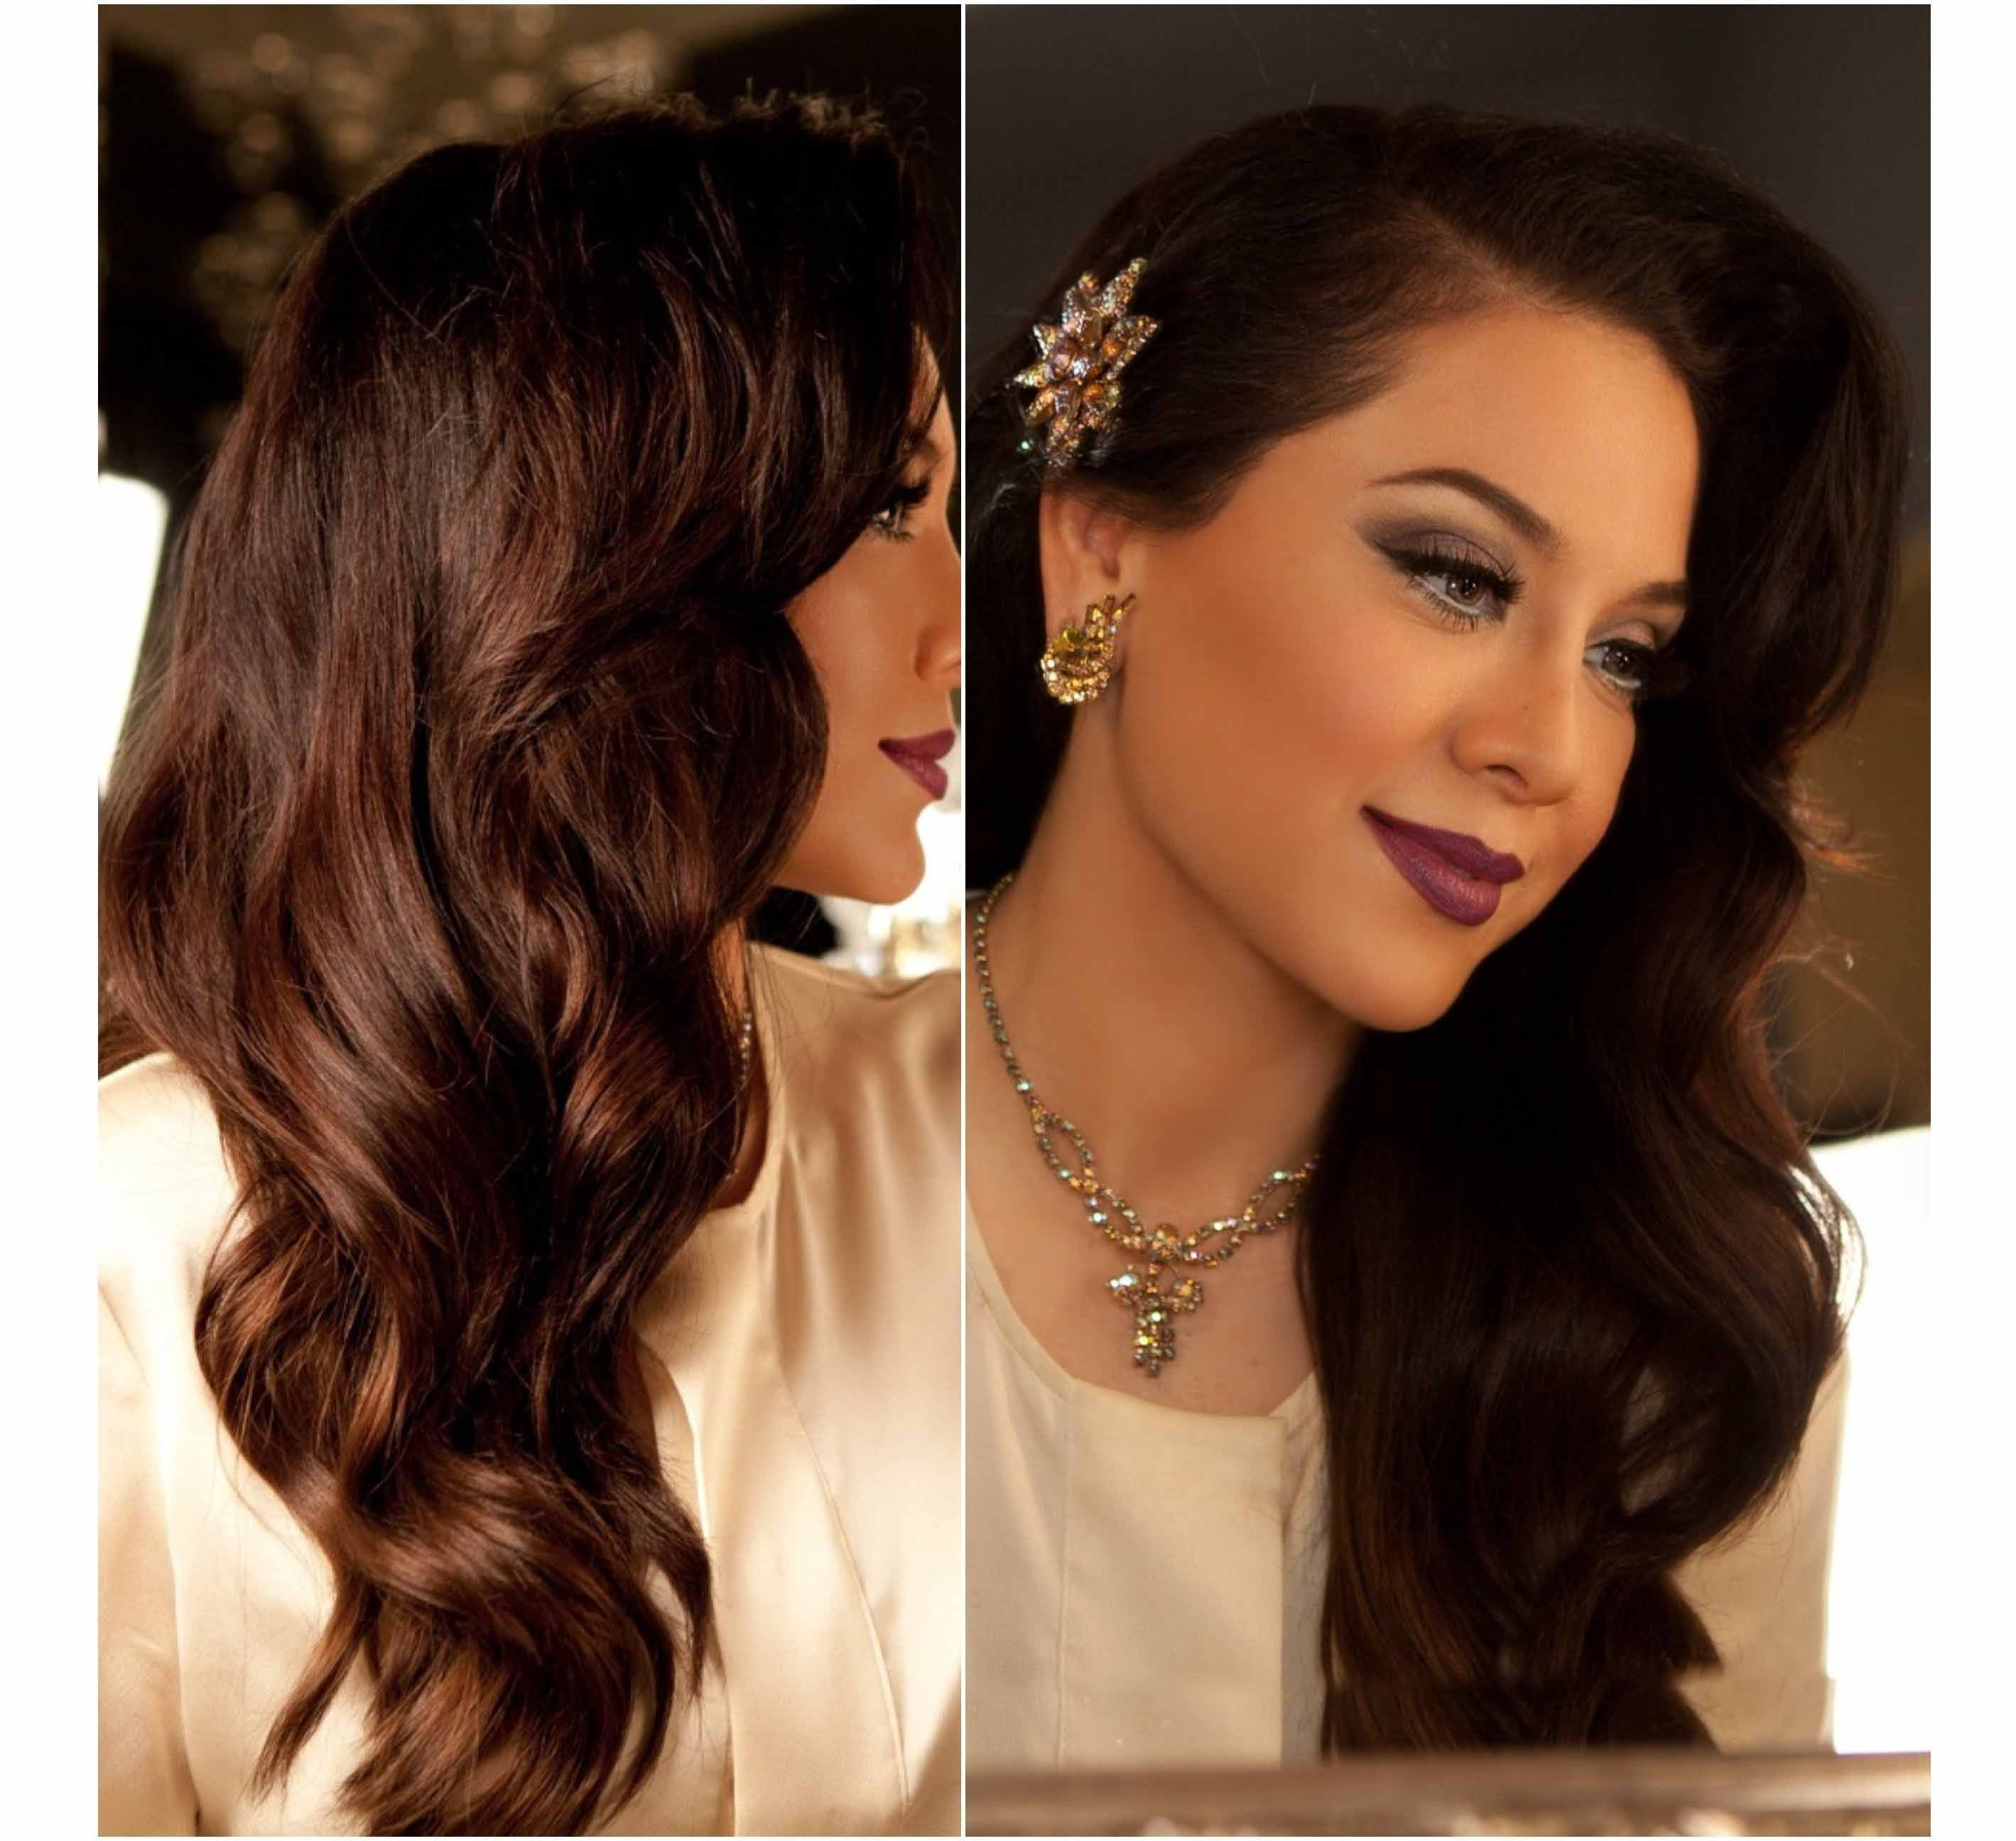 Hairstyles for Casino Night- 20's inspired. | Casino Night ...